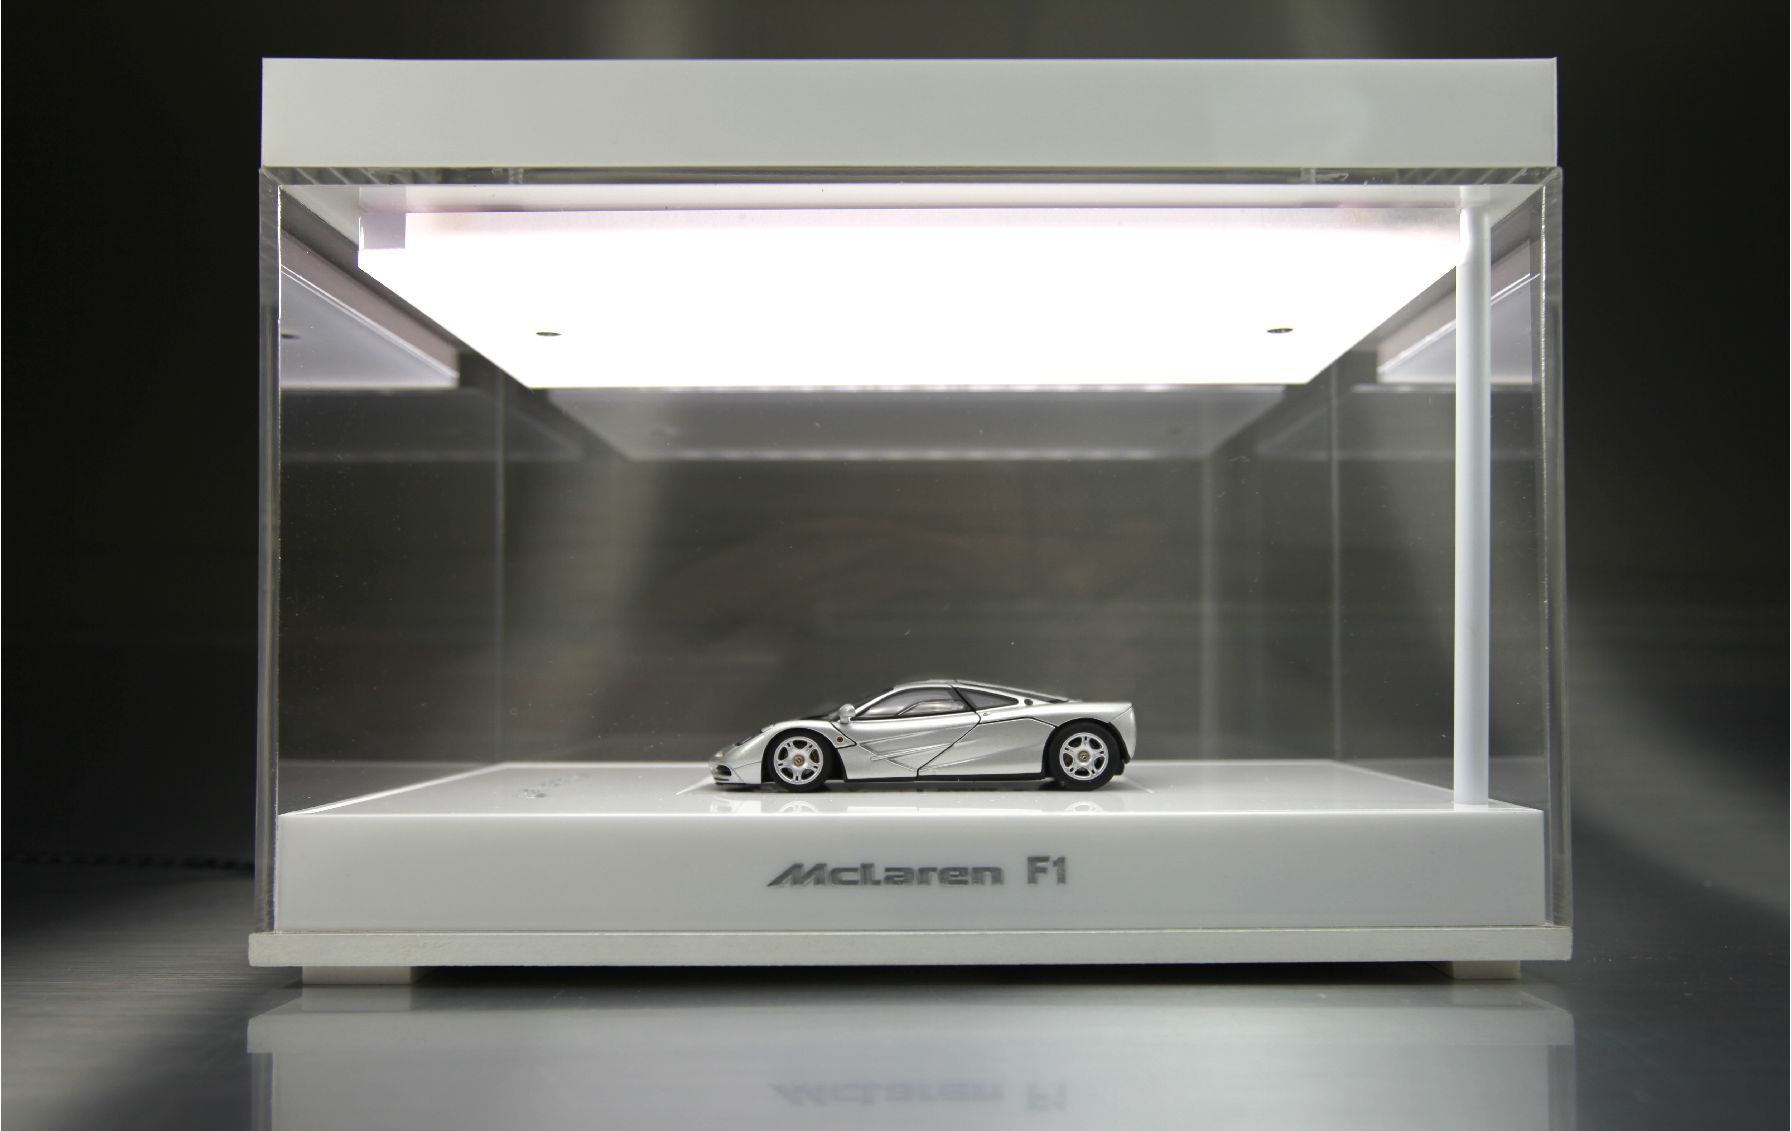 1/43 SCALE LED DISPLAY CASE model cars display | Diecast ...